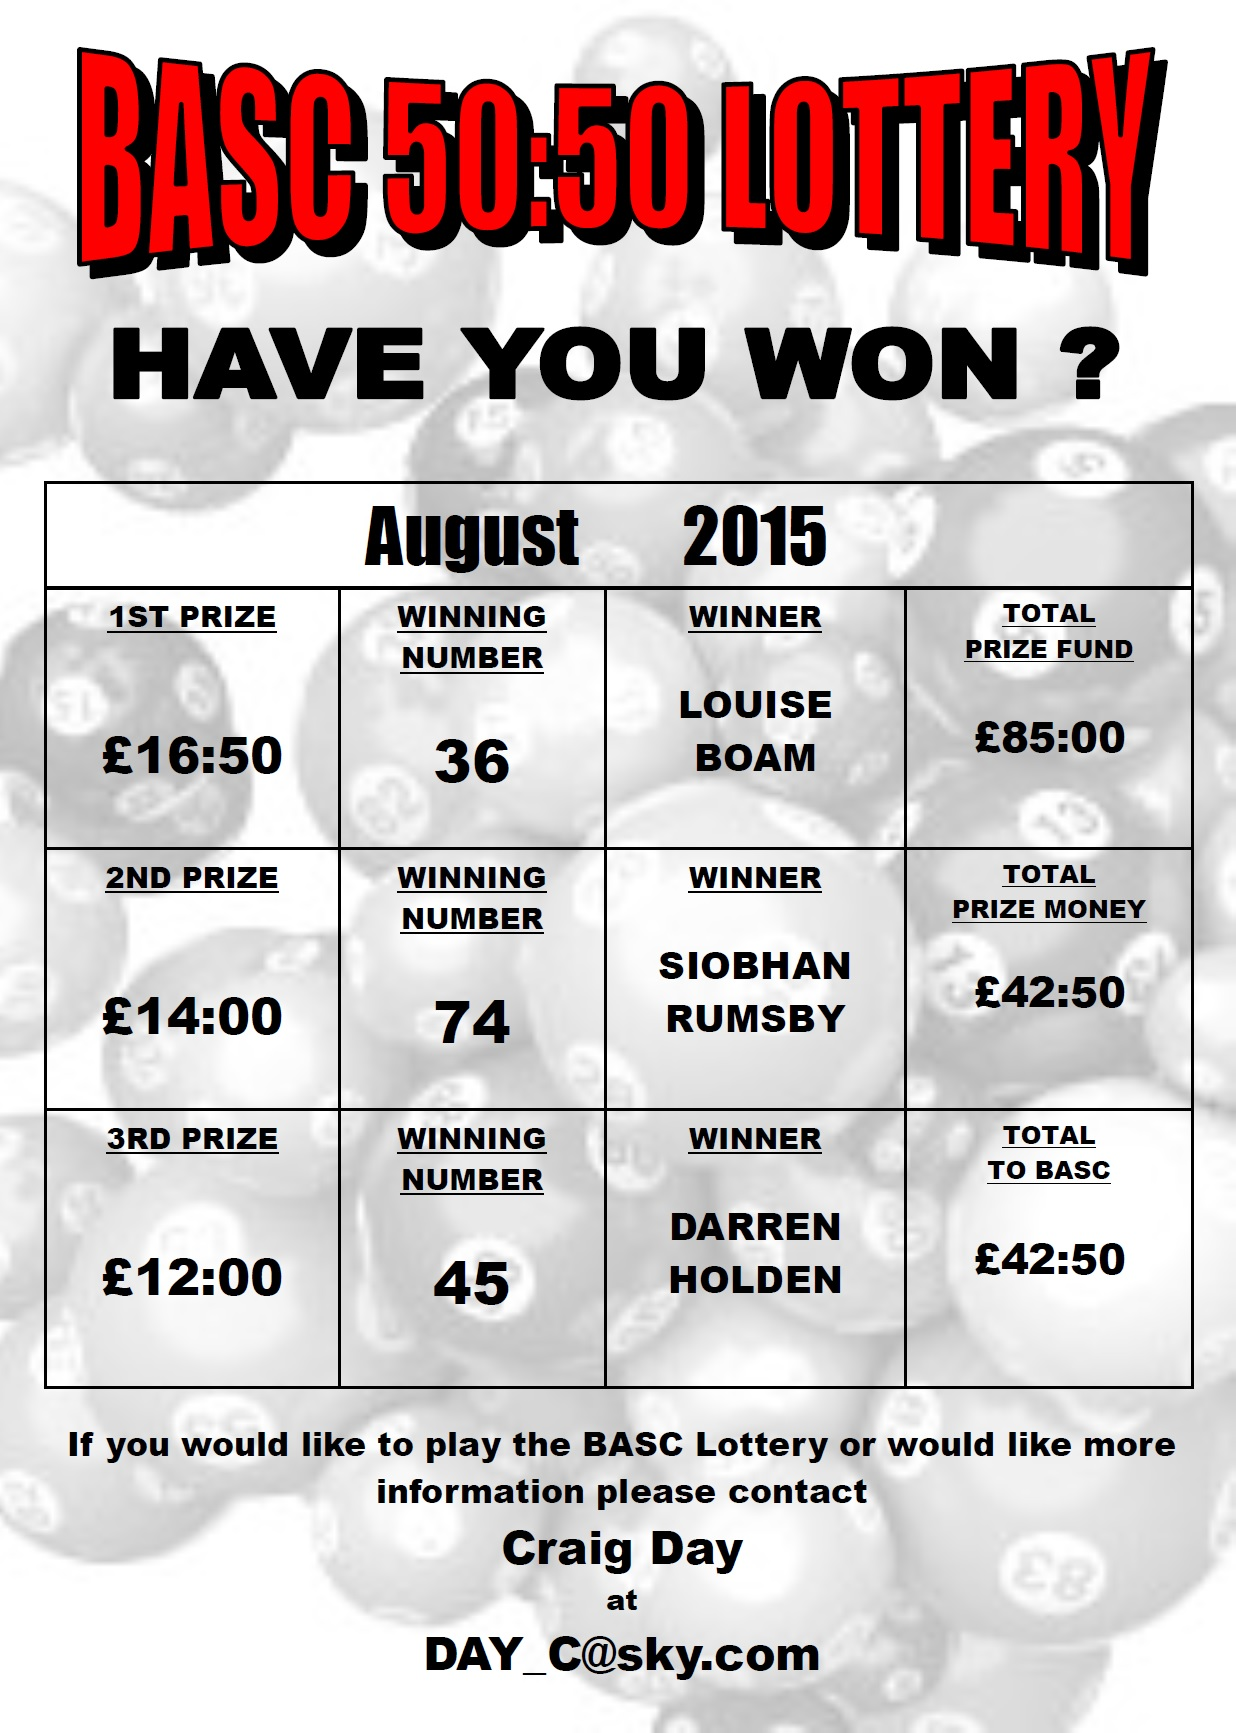 BASC 5050 Lottery Winners August 2015